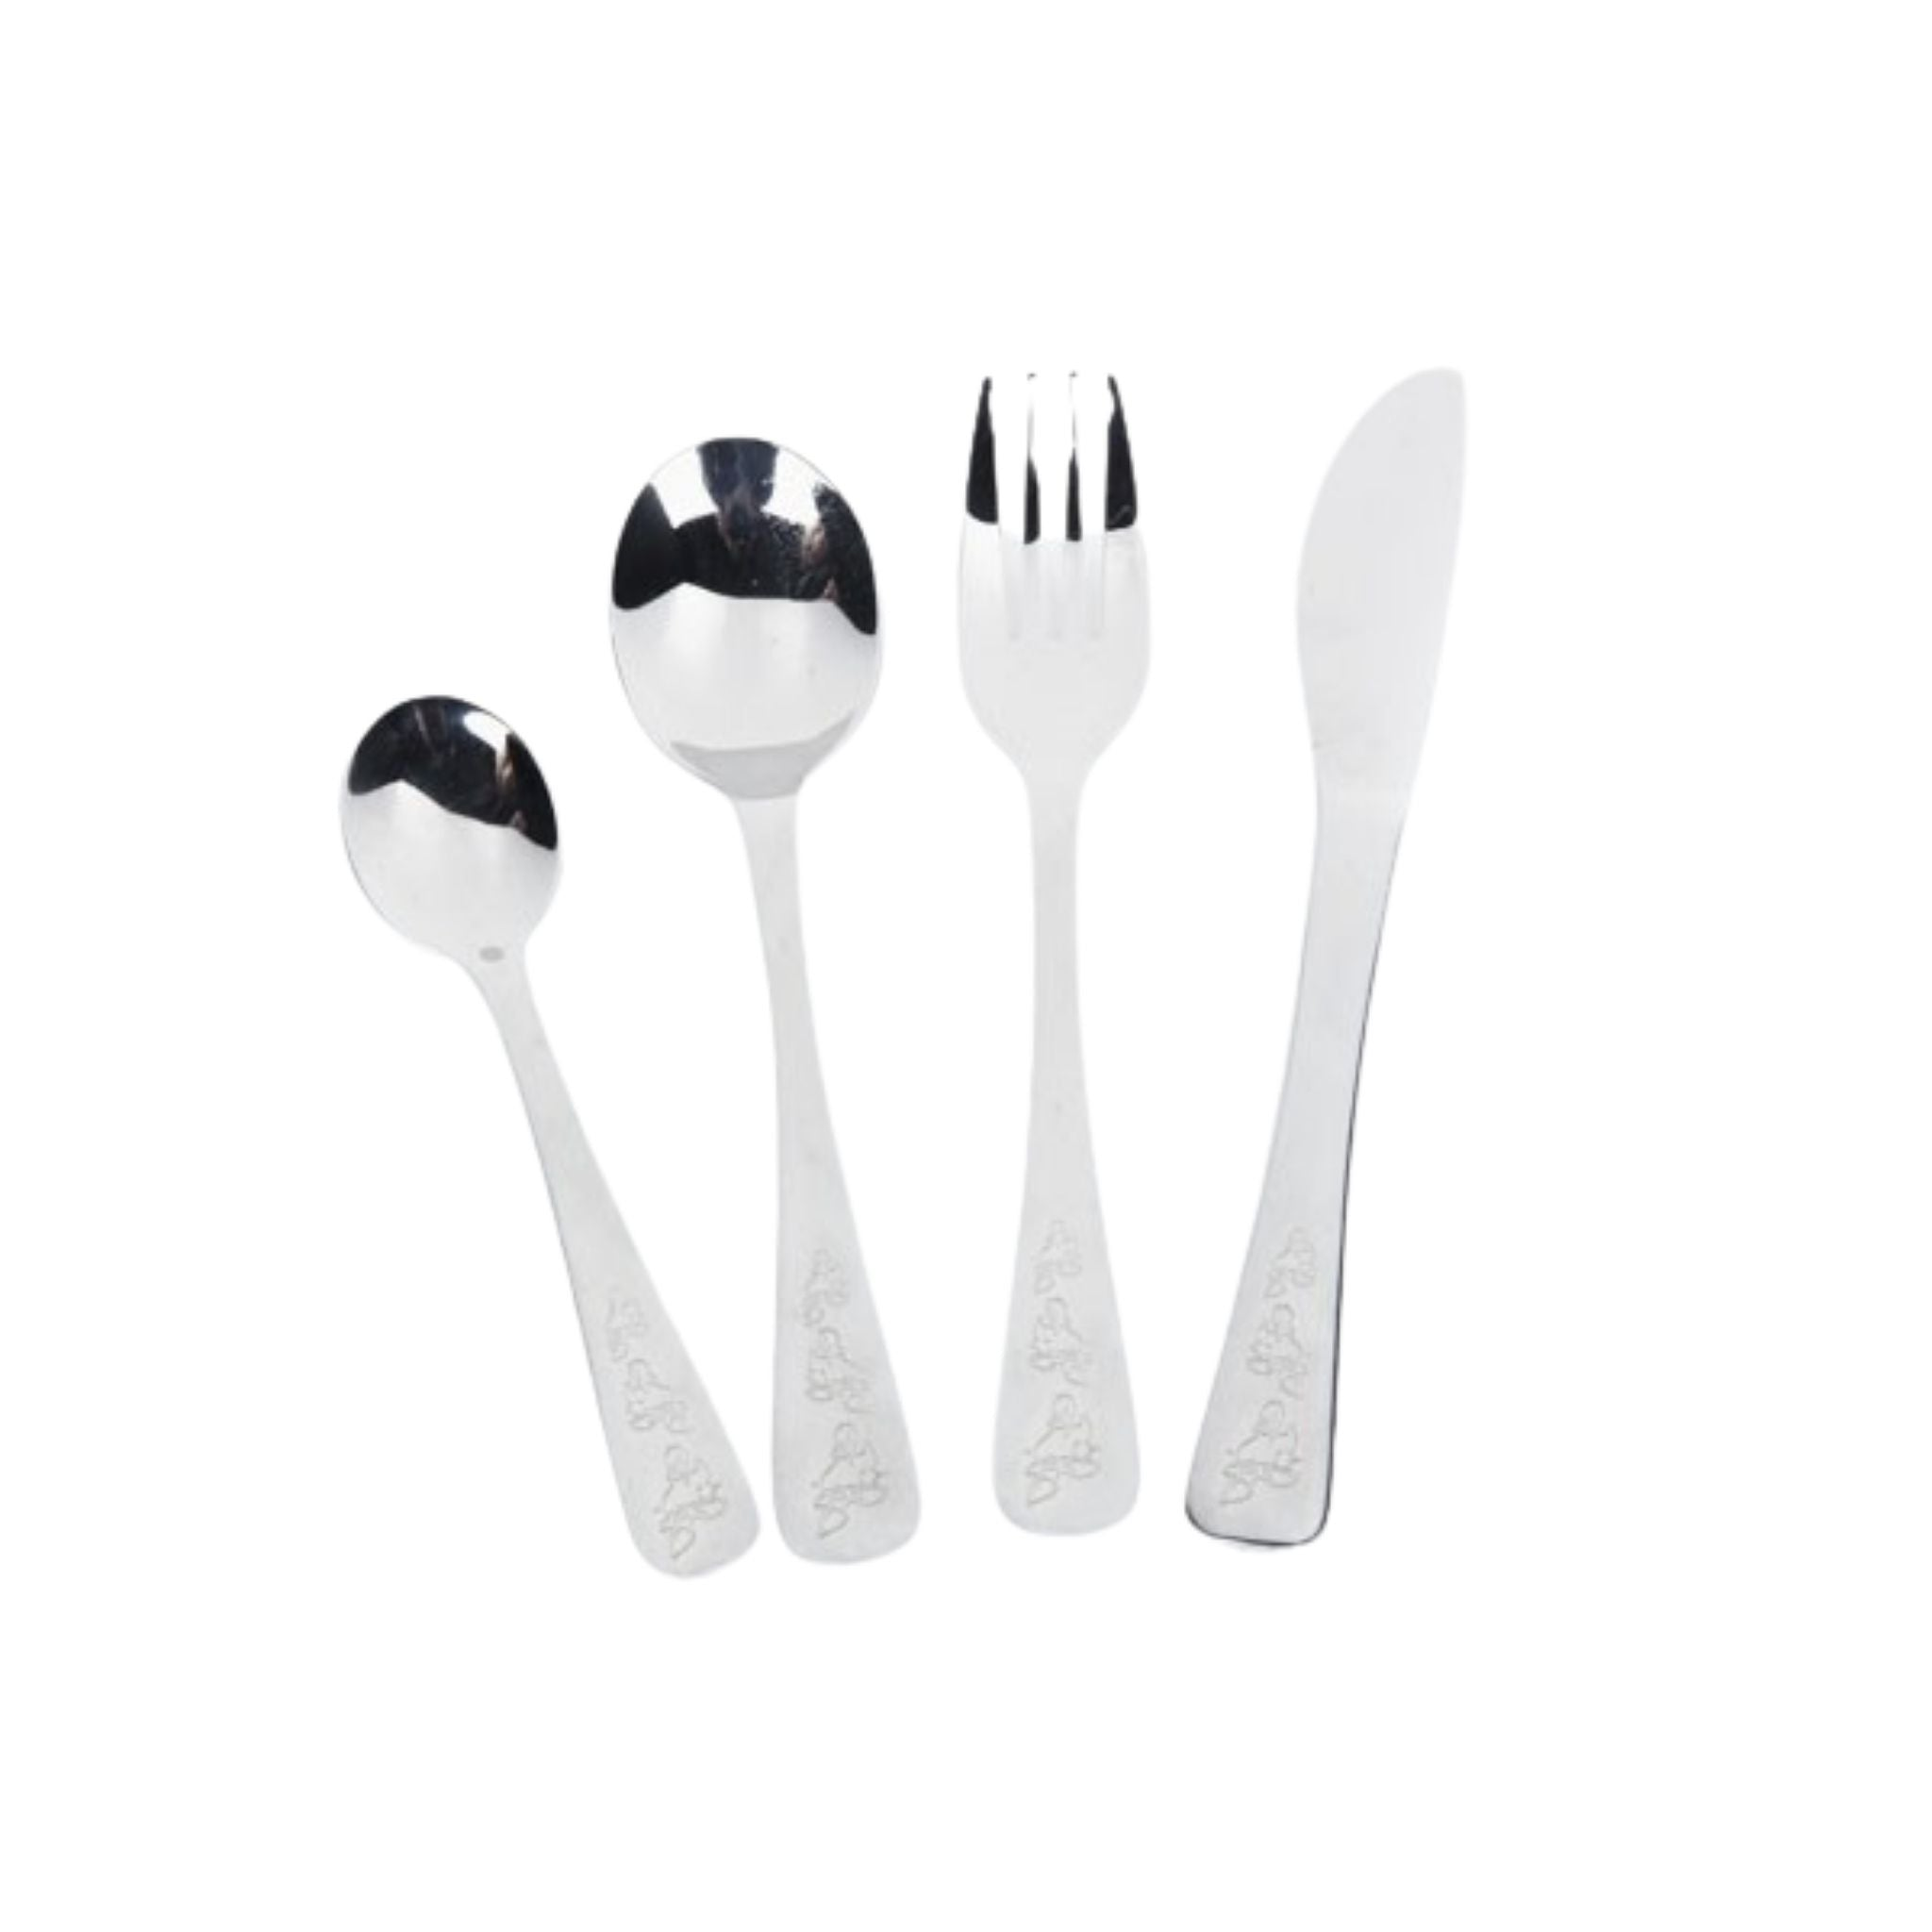 onyx cutlery duckies, engraved duck pattern on bottom of cutlery, from left to right, small spoon, large spoon, fork, knife